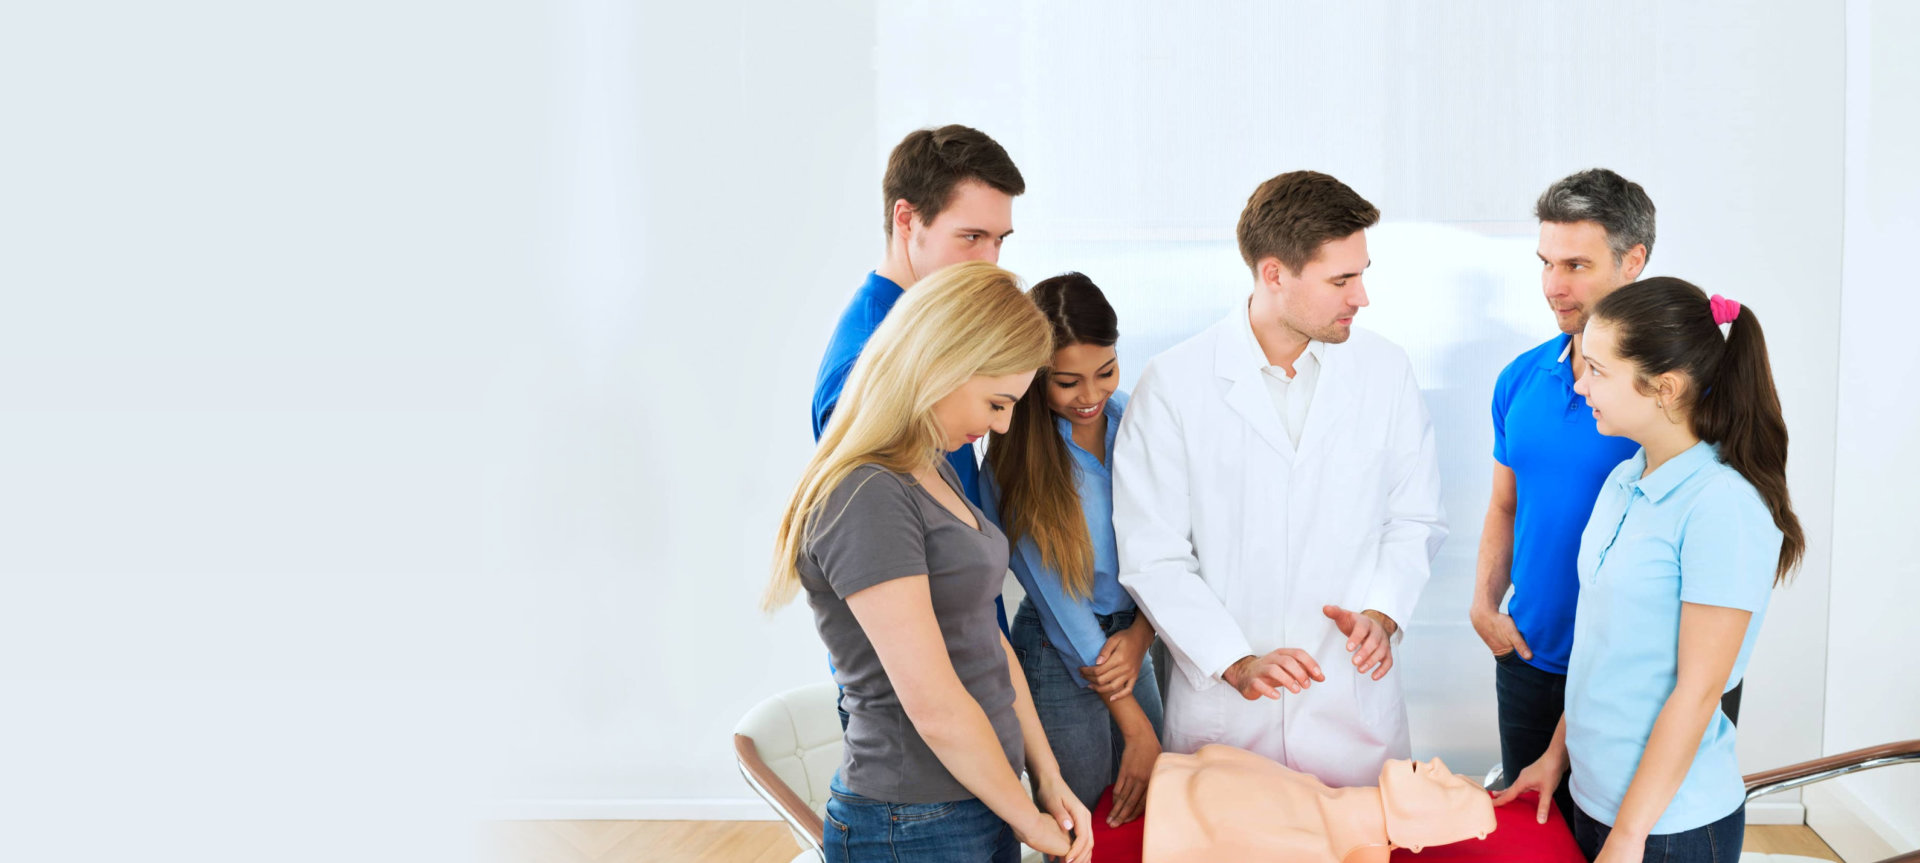 group of people listening to a medical worker